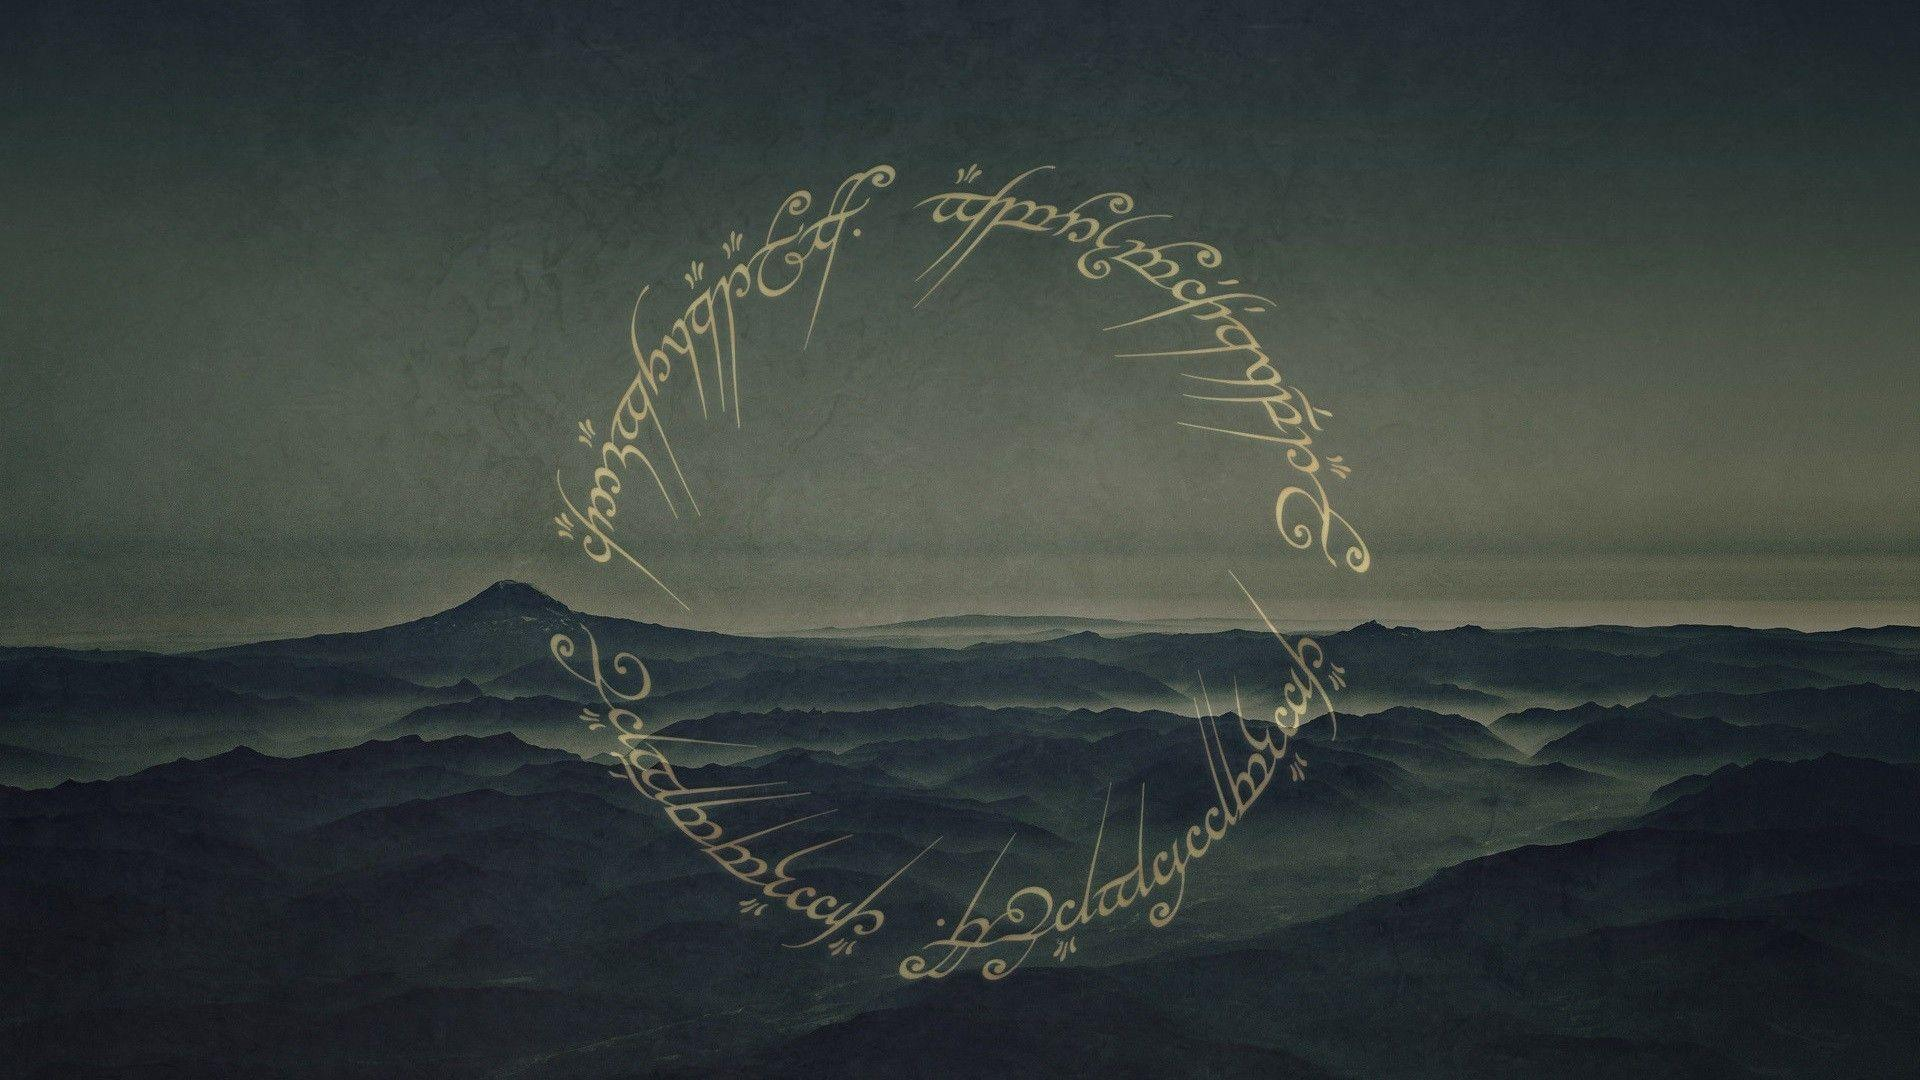 The Lord Of The Rings Wallpapers - Wallpaper Cave